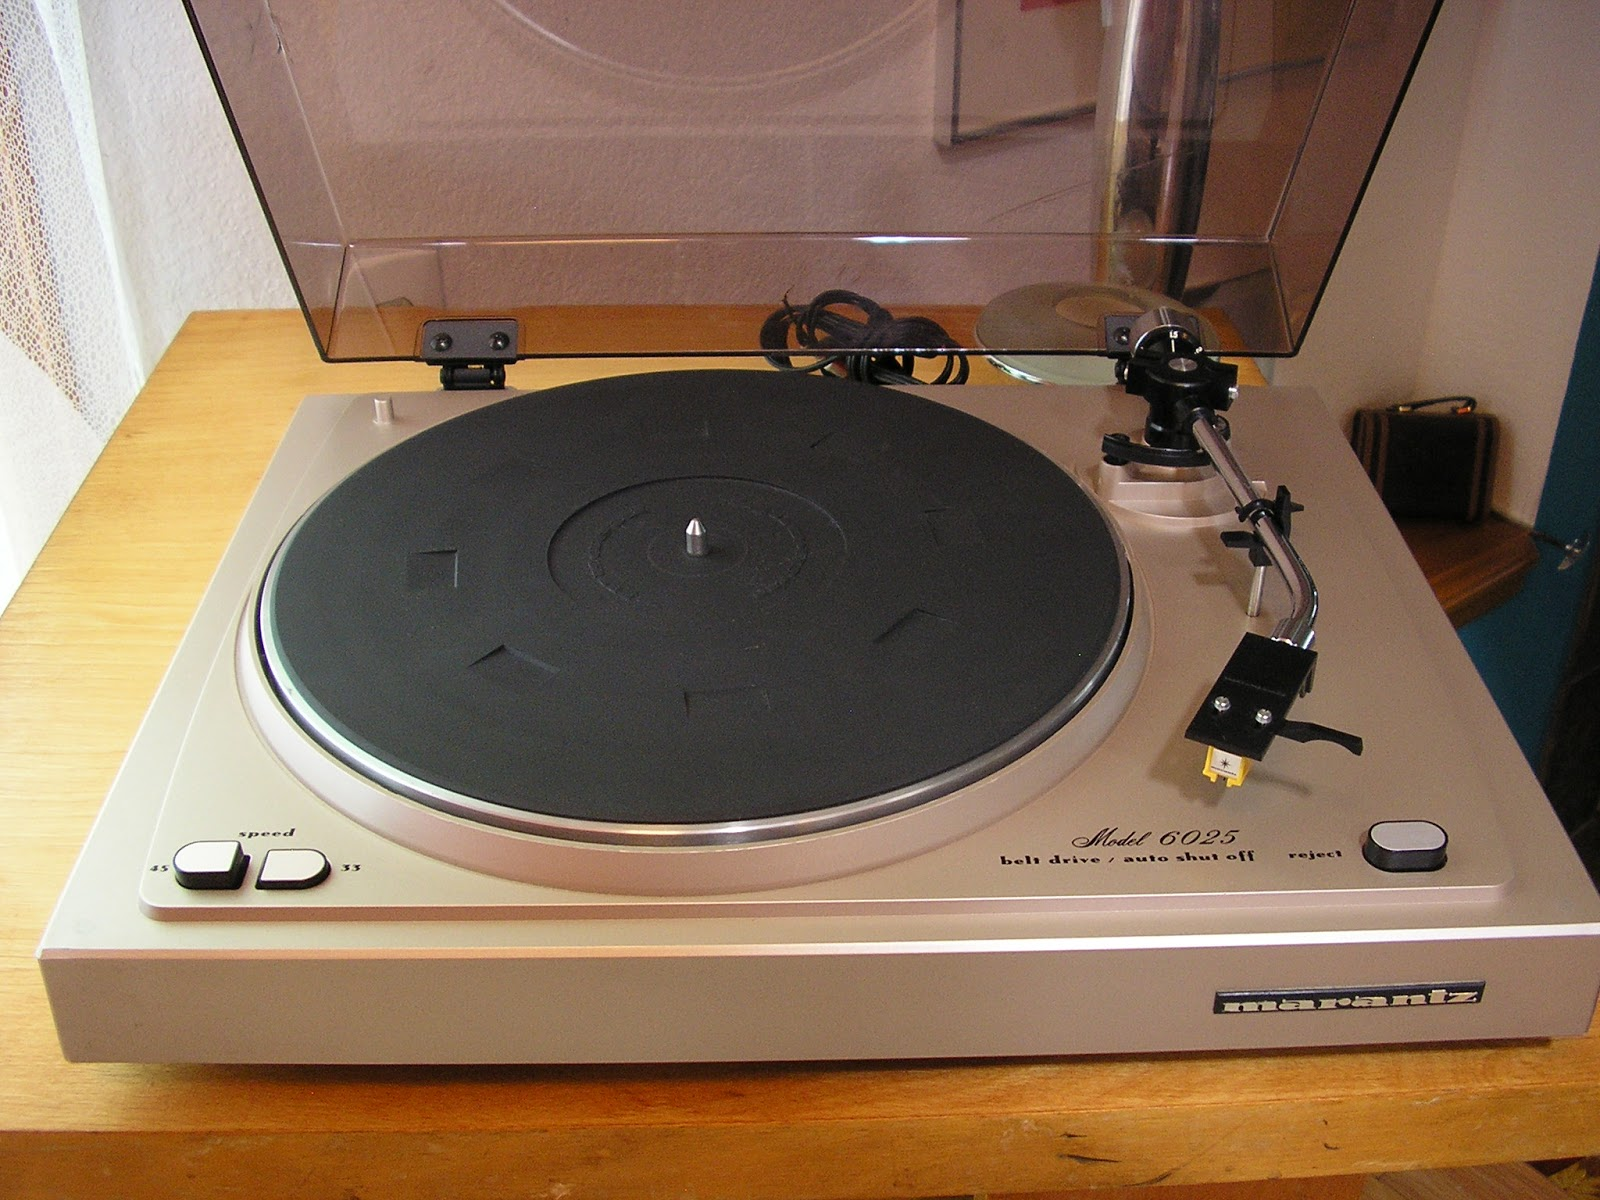 marantz 6025 turntable. Black Bedroom Furniture Sets. Home Design Ideas